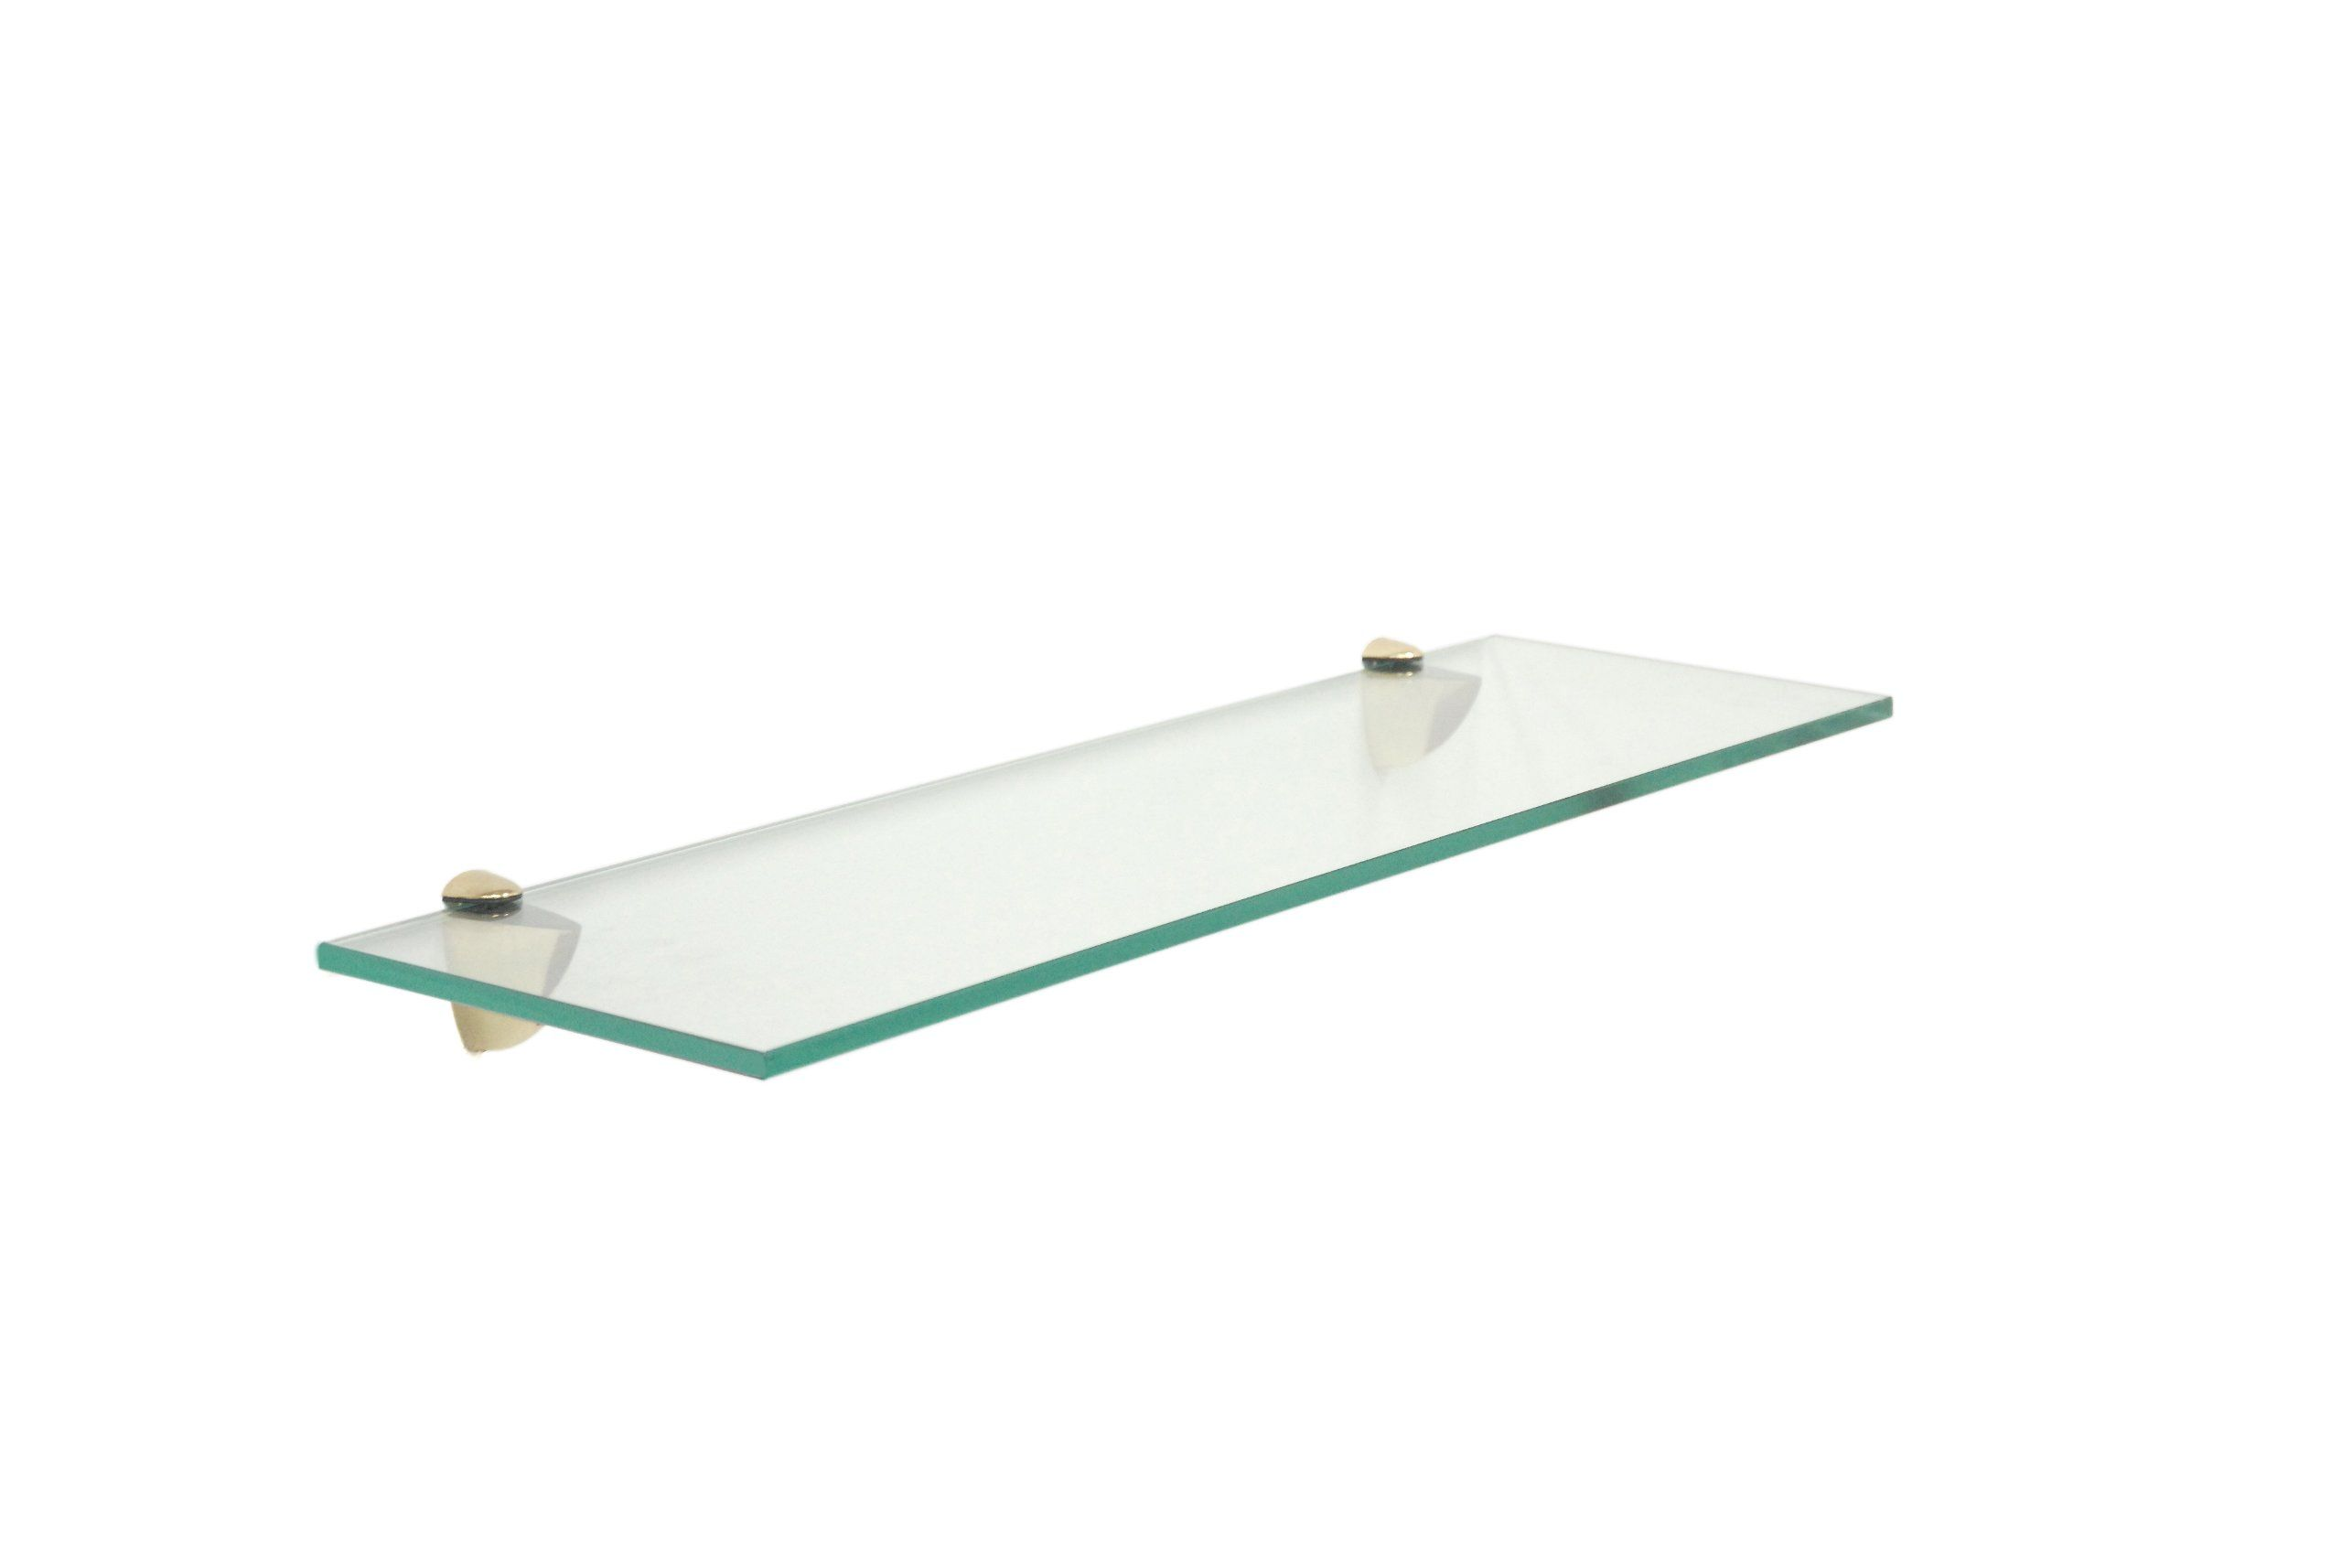 Amazon Com Floating Glass Bathroom Shelf Finish Chrome Size 30 W X 6 D Floating Shelves 4 Glass Bathroom Shelves Glass Shelves Floating Glass Shelves